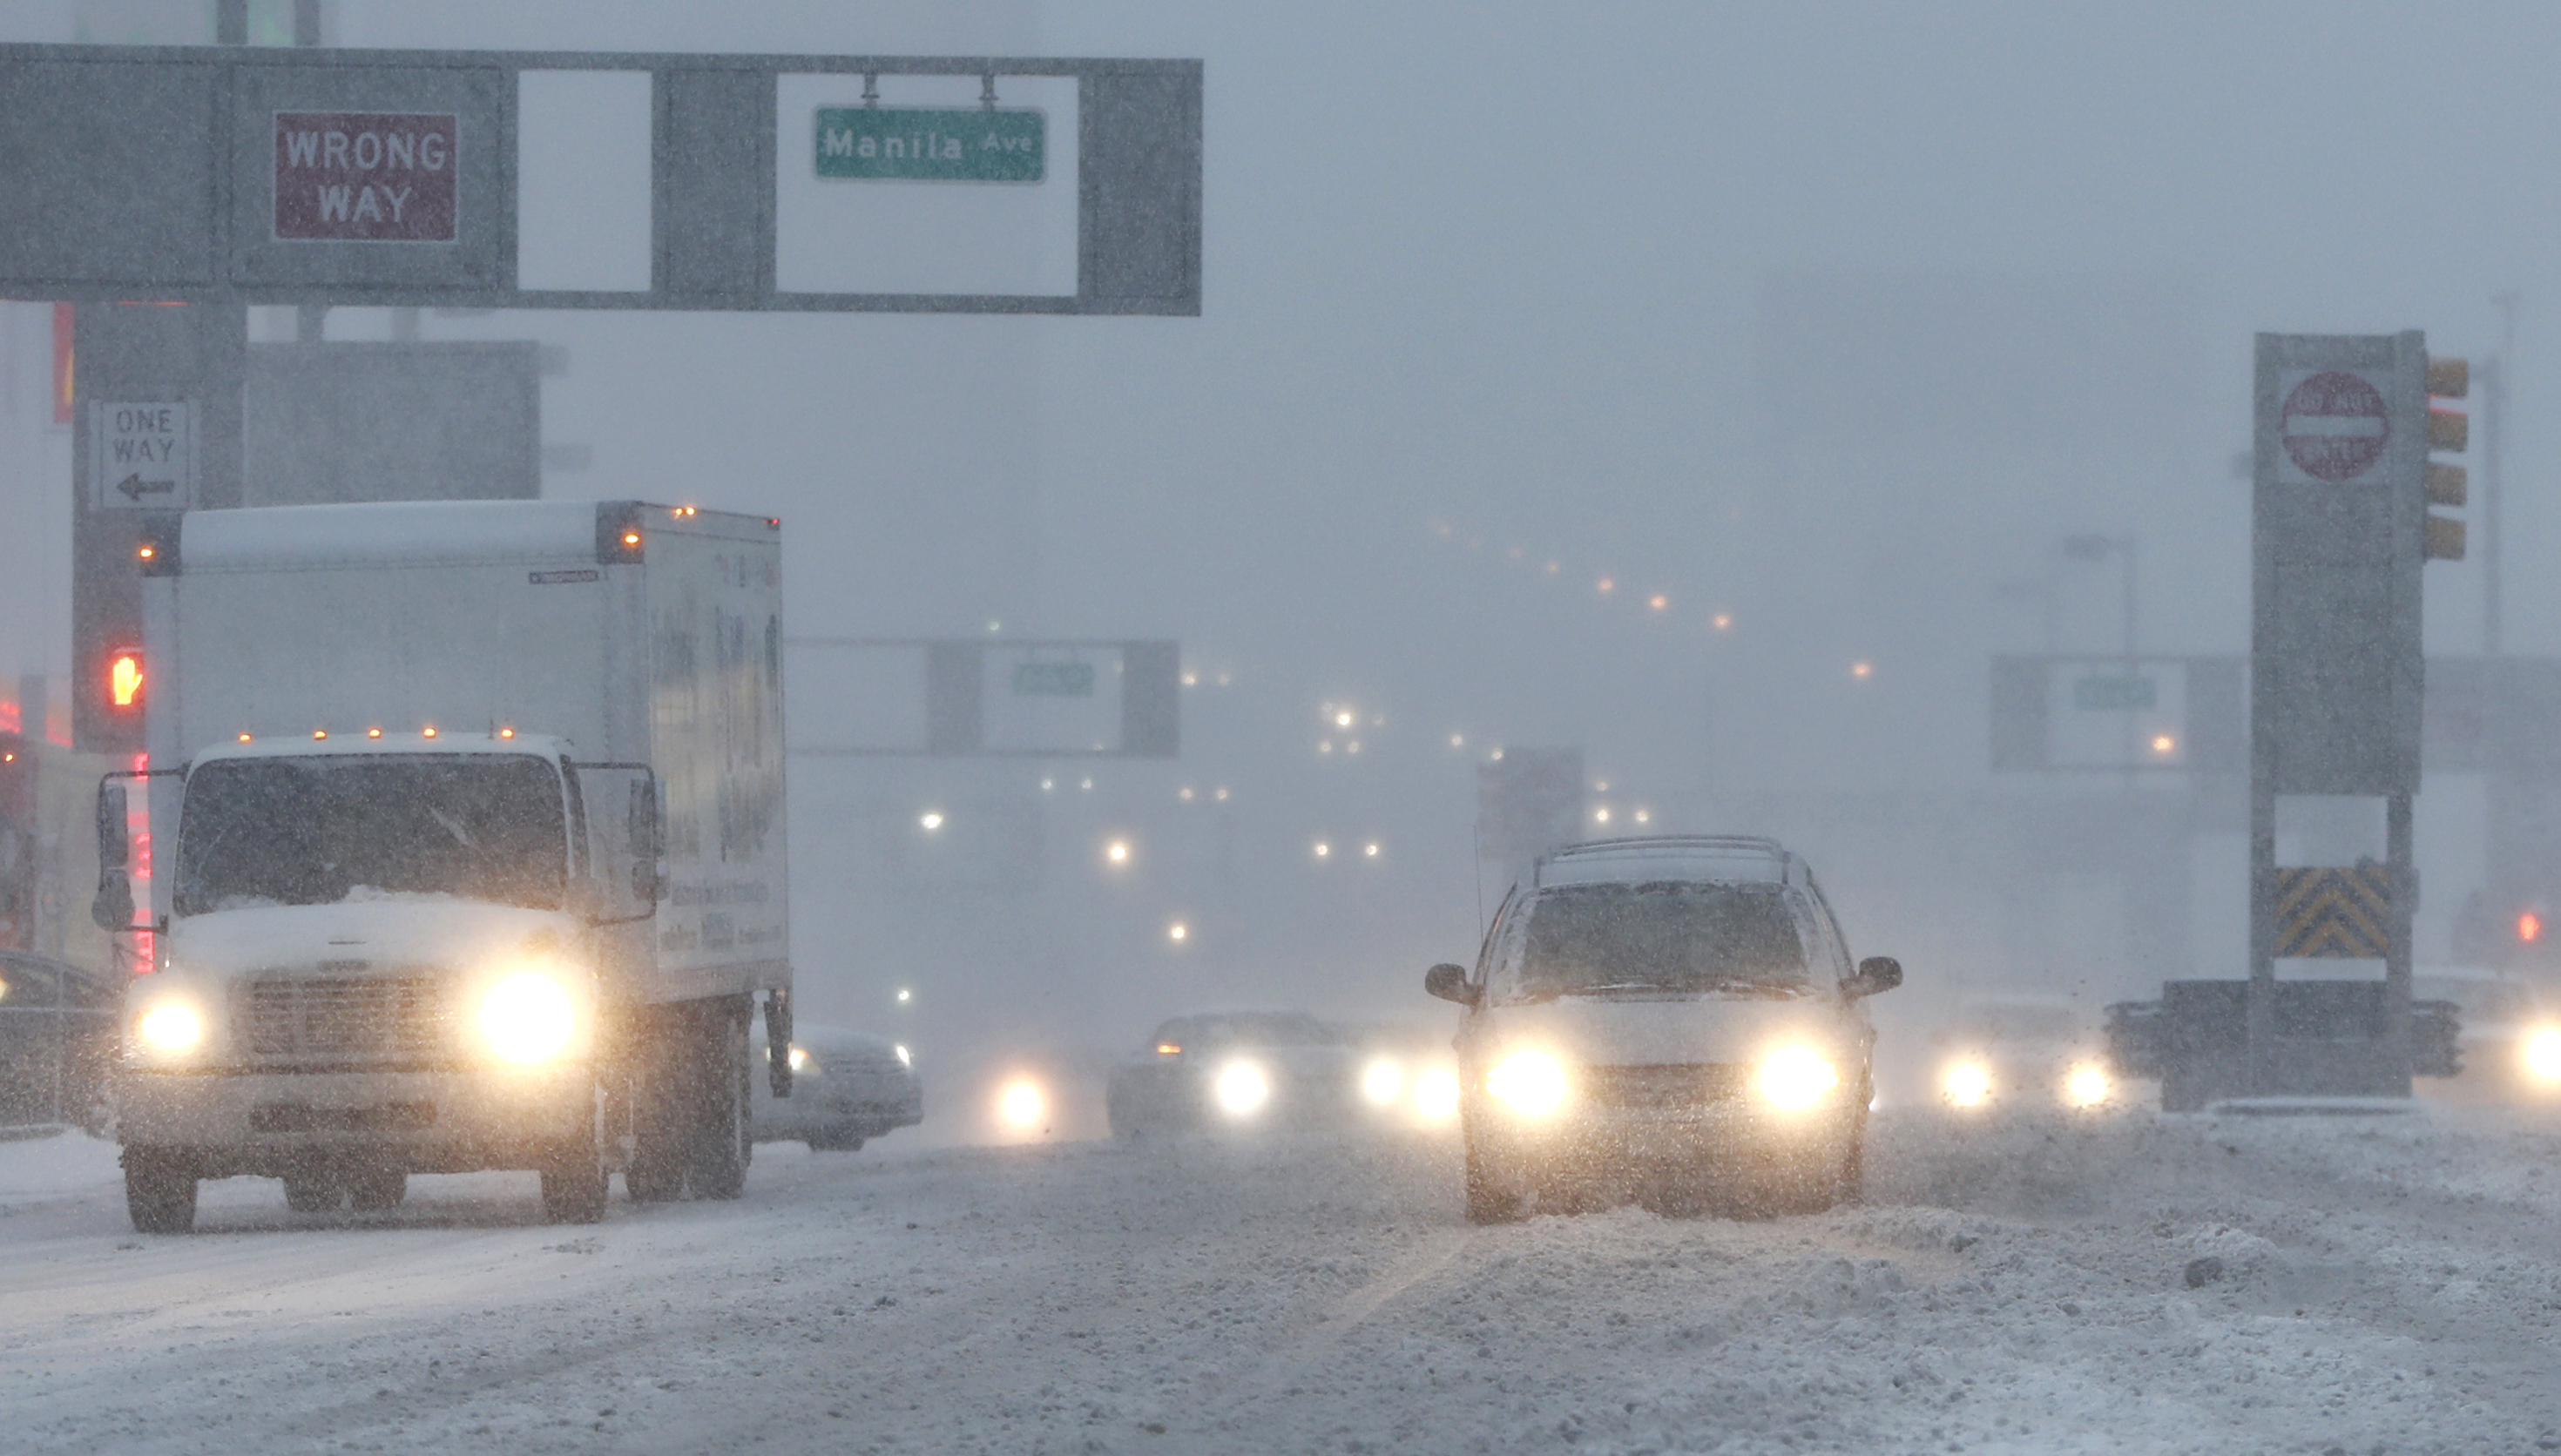 Vehicles drive drive through snow as they approach the Holland Tunnel in Jersey City, N.J., on Feb. 9, 2017. (AP Photo/Julio Cortez)